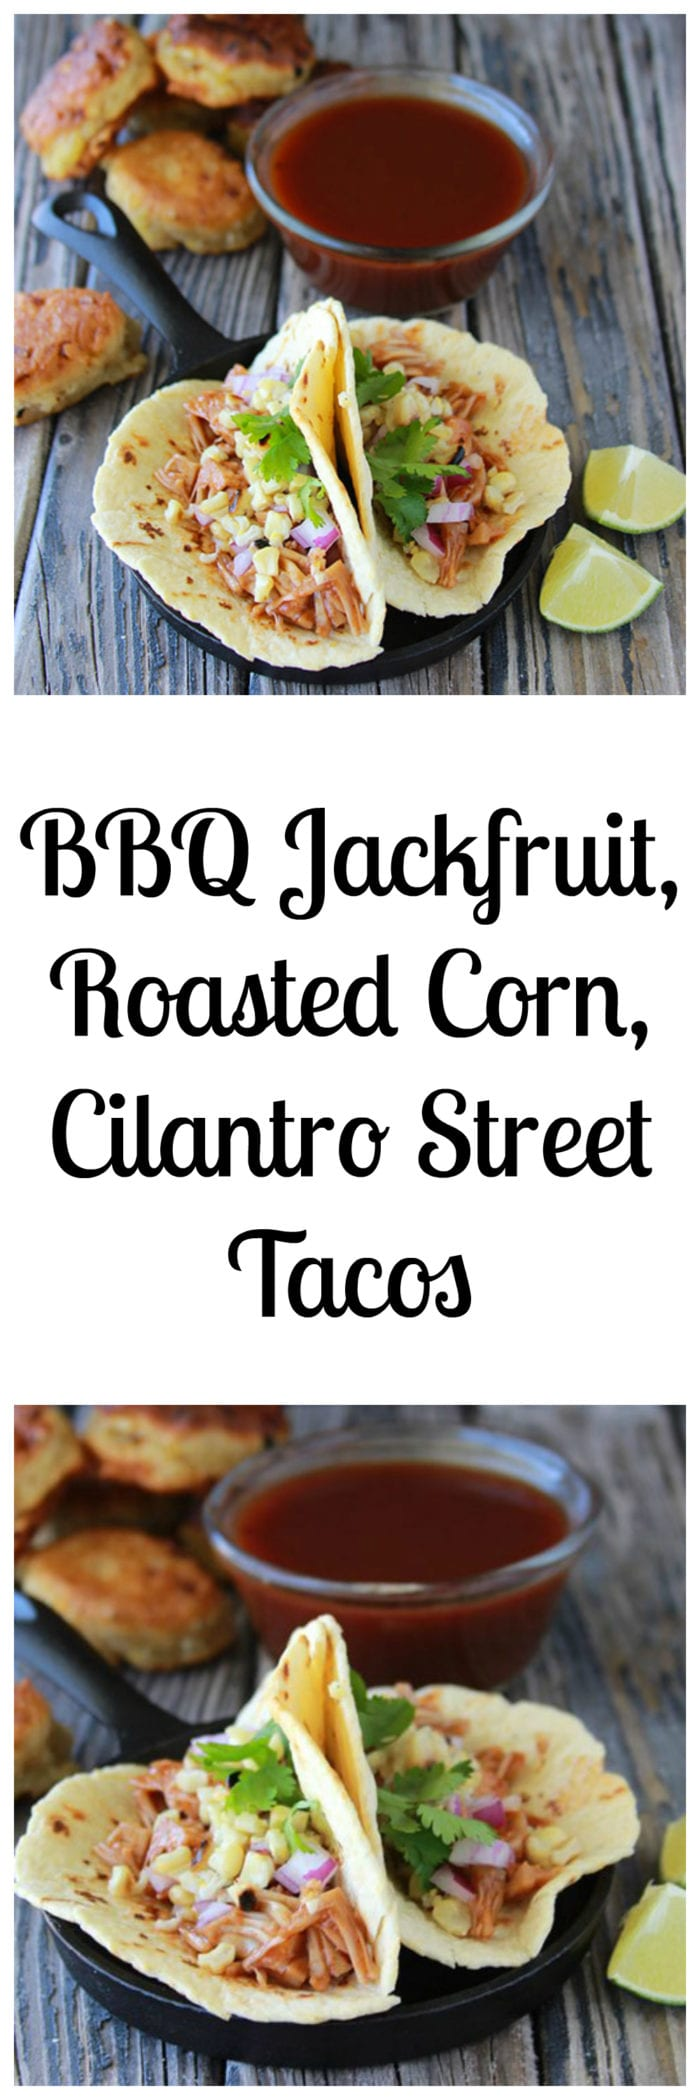 BBQ Jackfruit, Roasted Corn, Cilantro Street Tacos are so good you'll never guess they're vegan! www.cookingwithruthie.com